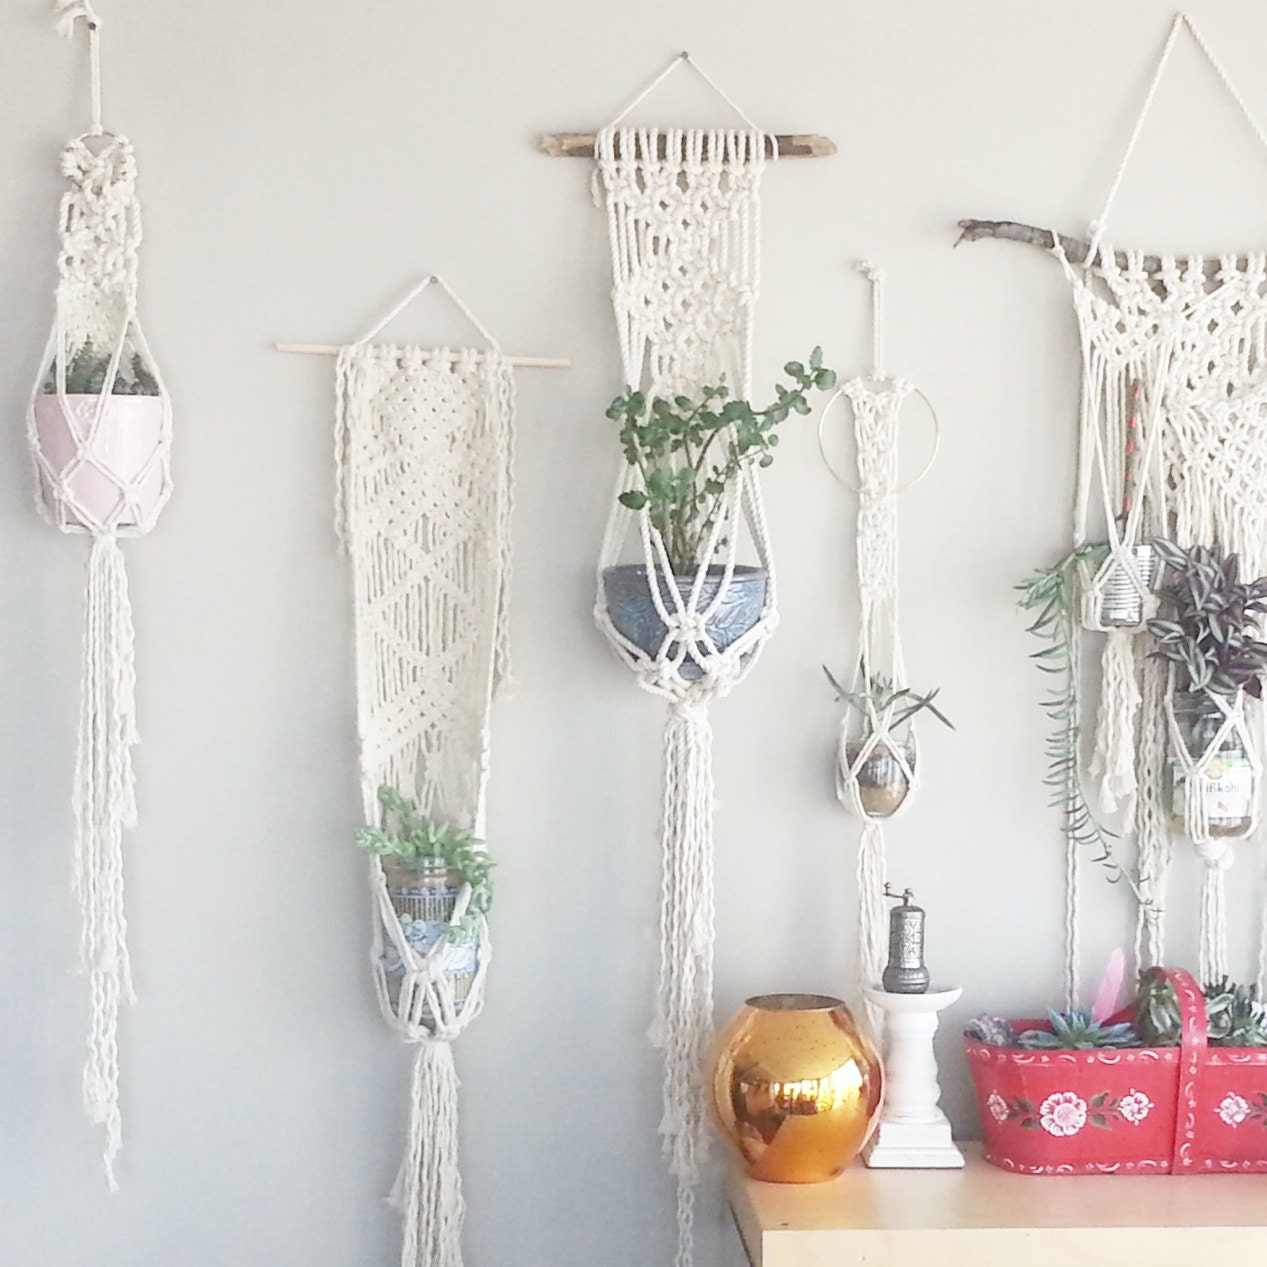 Shabby Chic Hanging Planter Wall Accent Bohemian Decor Dorm